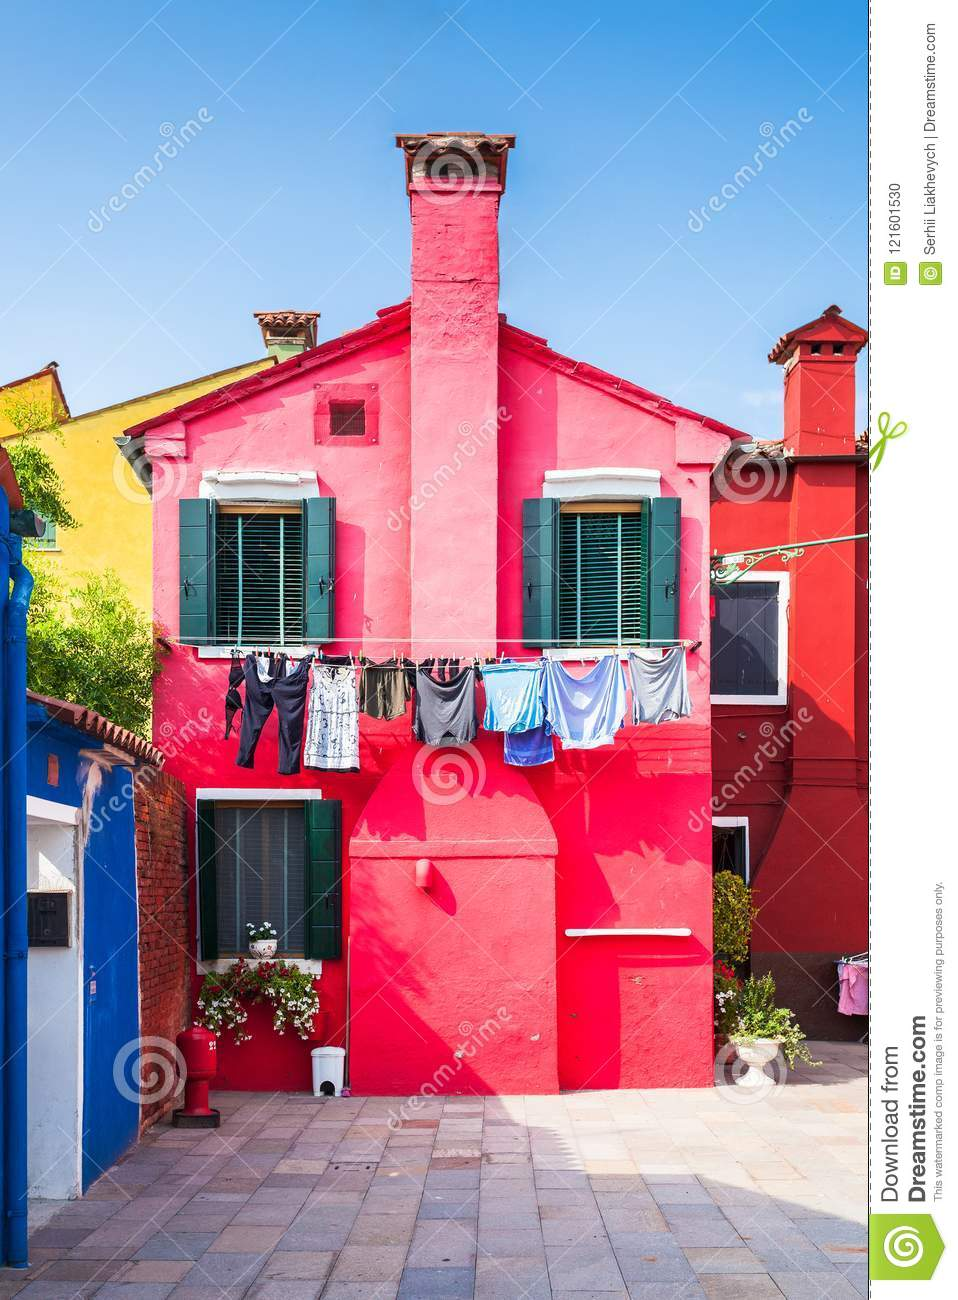 Patio With Colorful Houses On The Island Of Burano, Venice, Italia ...